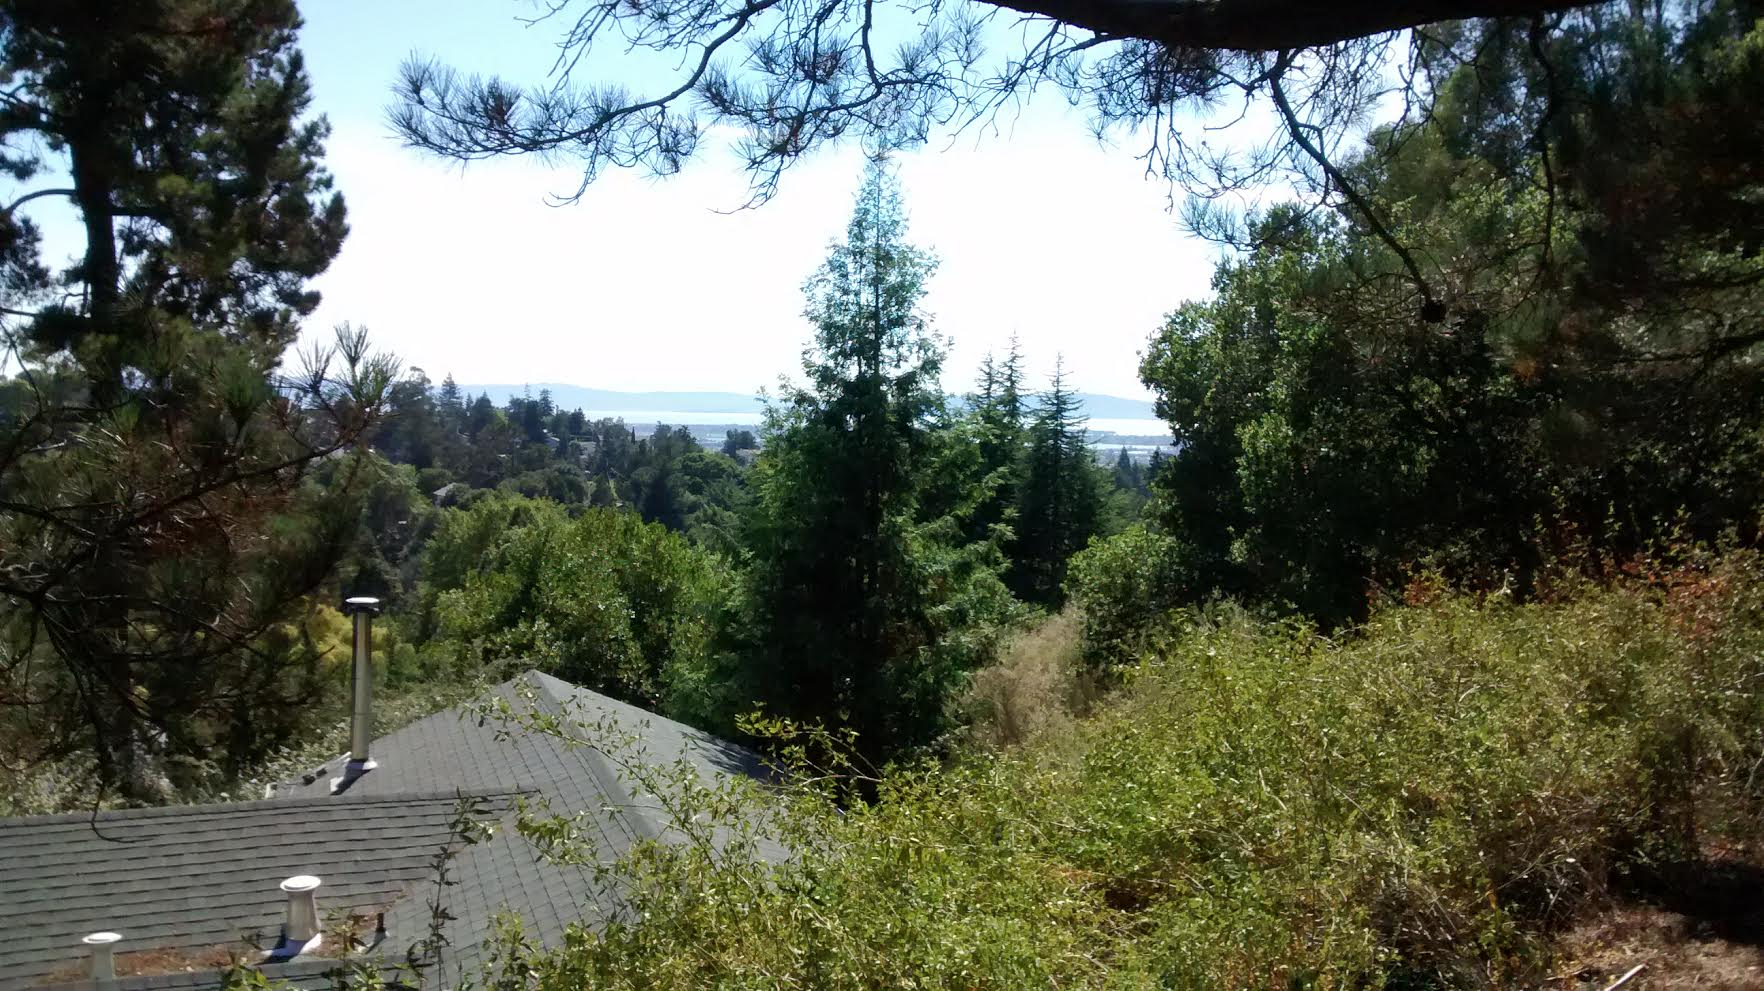 Oakland home for sale - COMING SOON!